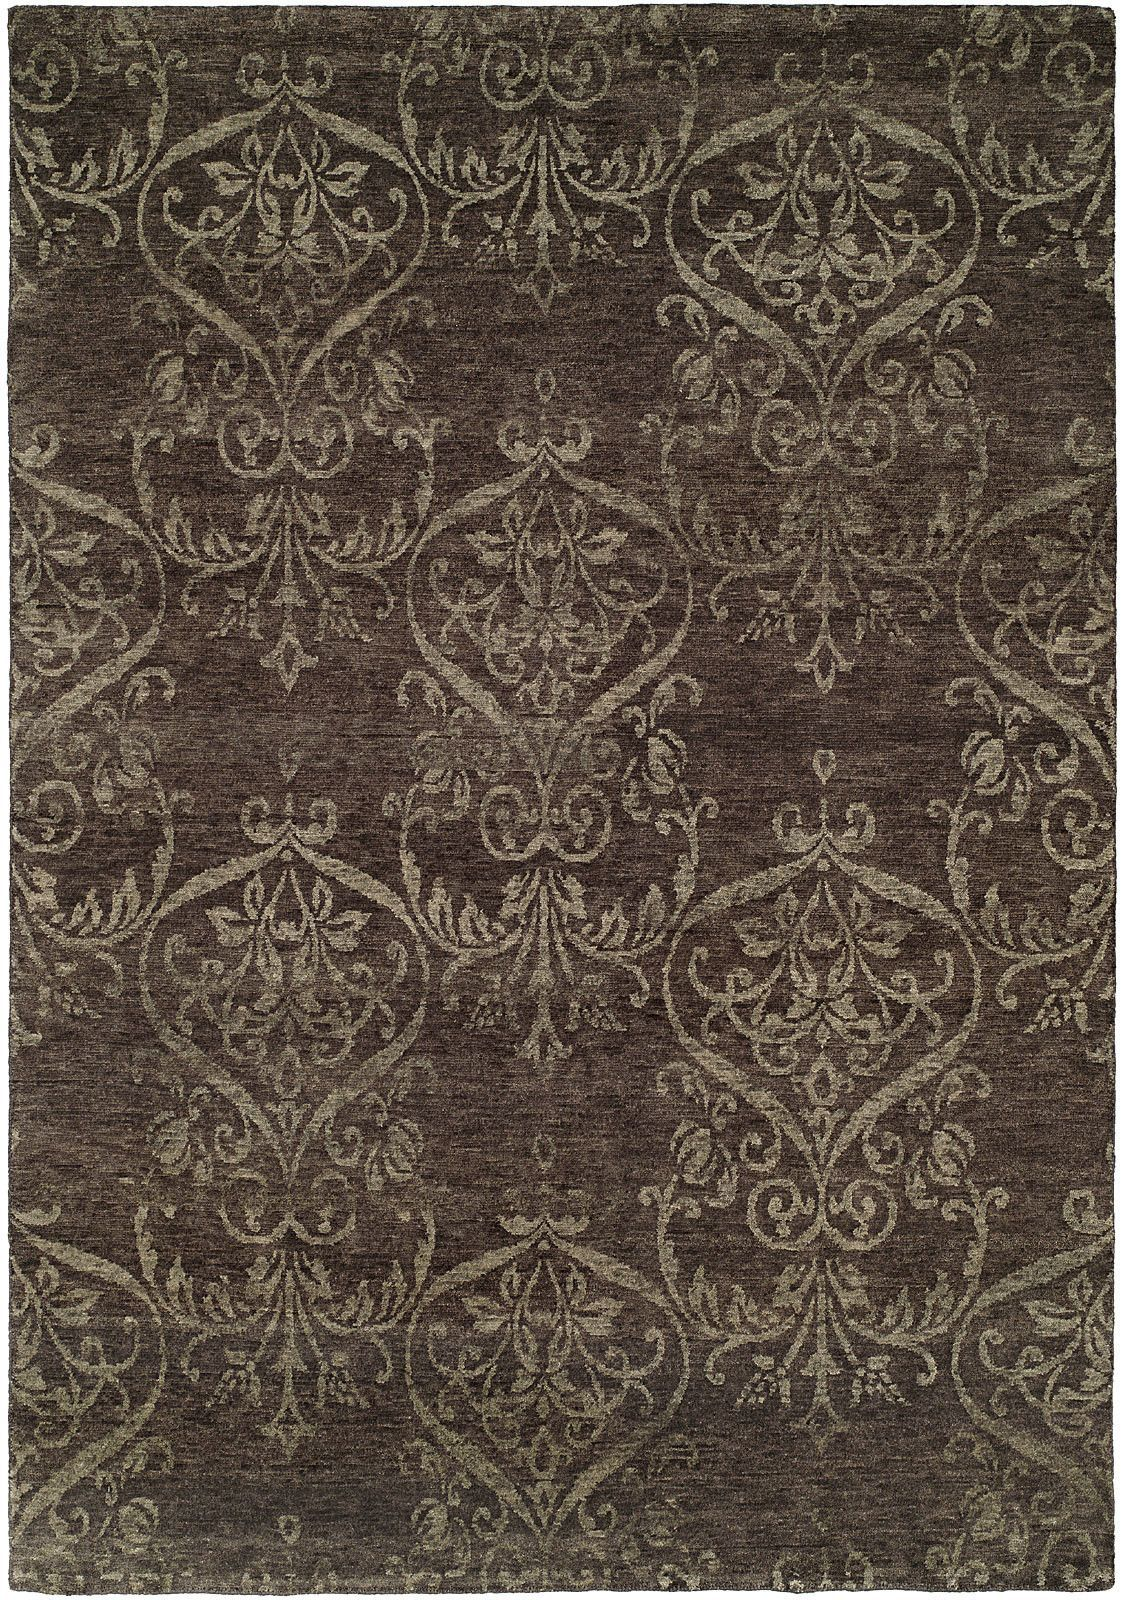 Floral Hand Knotted Wool Gray Area Rug In 2020 Grey Area Rug Area Rugs Purple Area Rugs